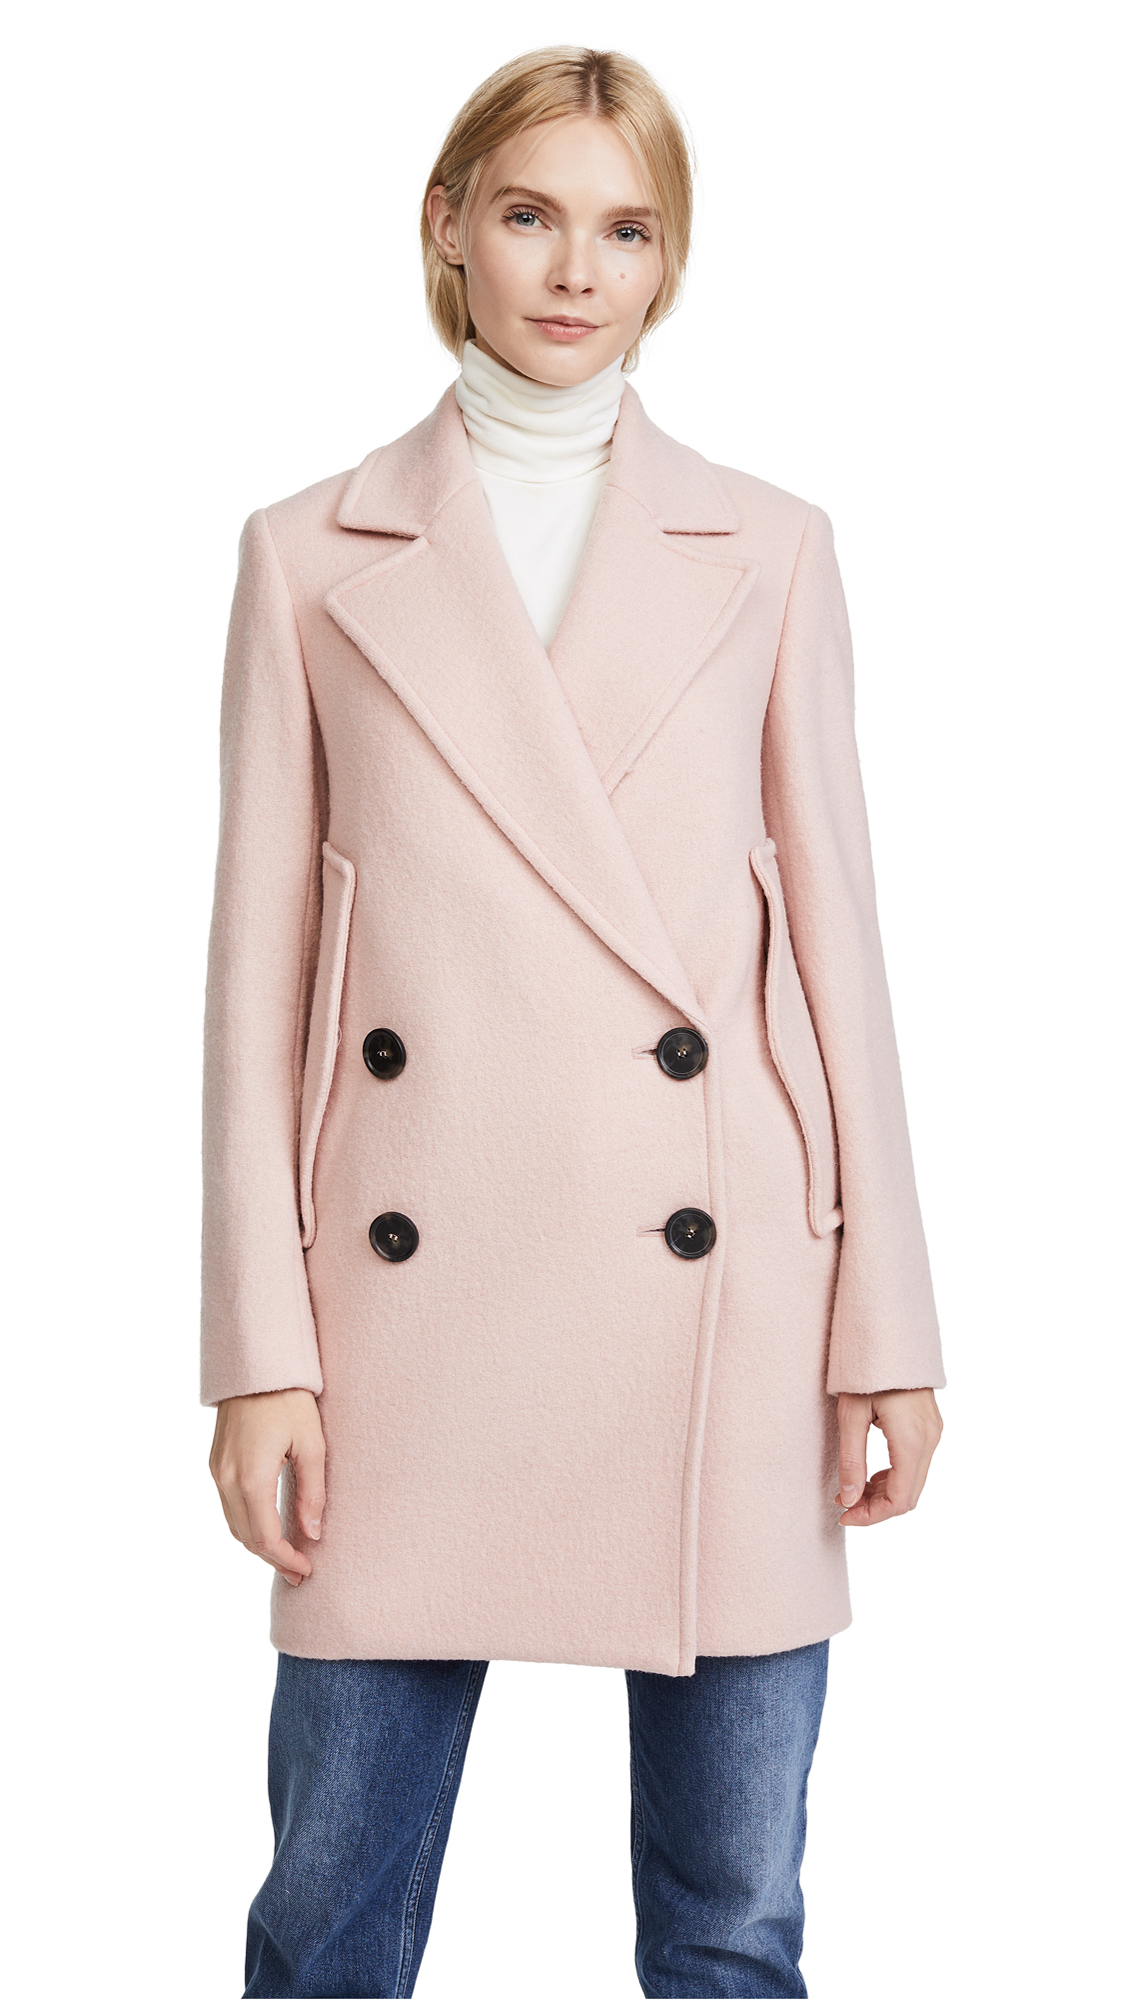 Theory Cape Coat - Chalk Pink